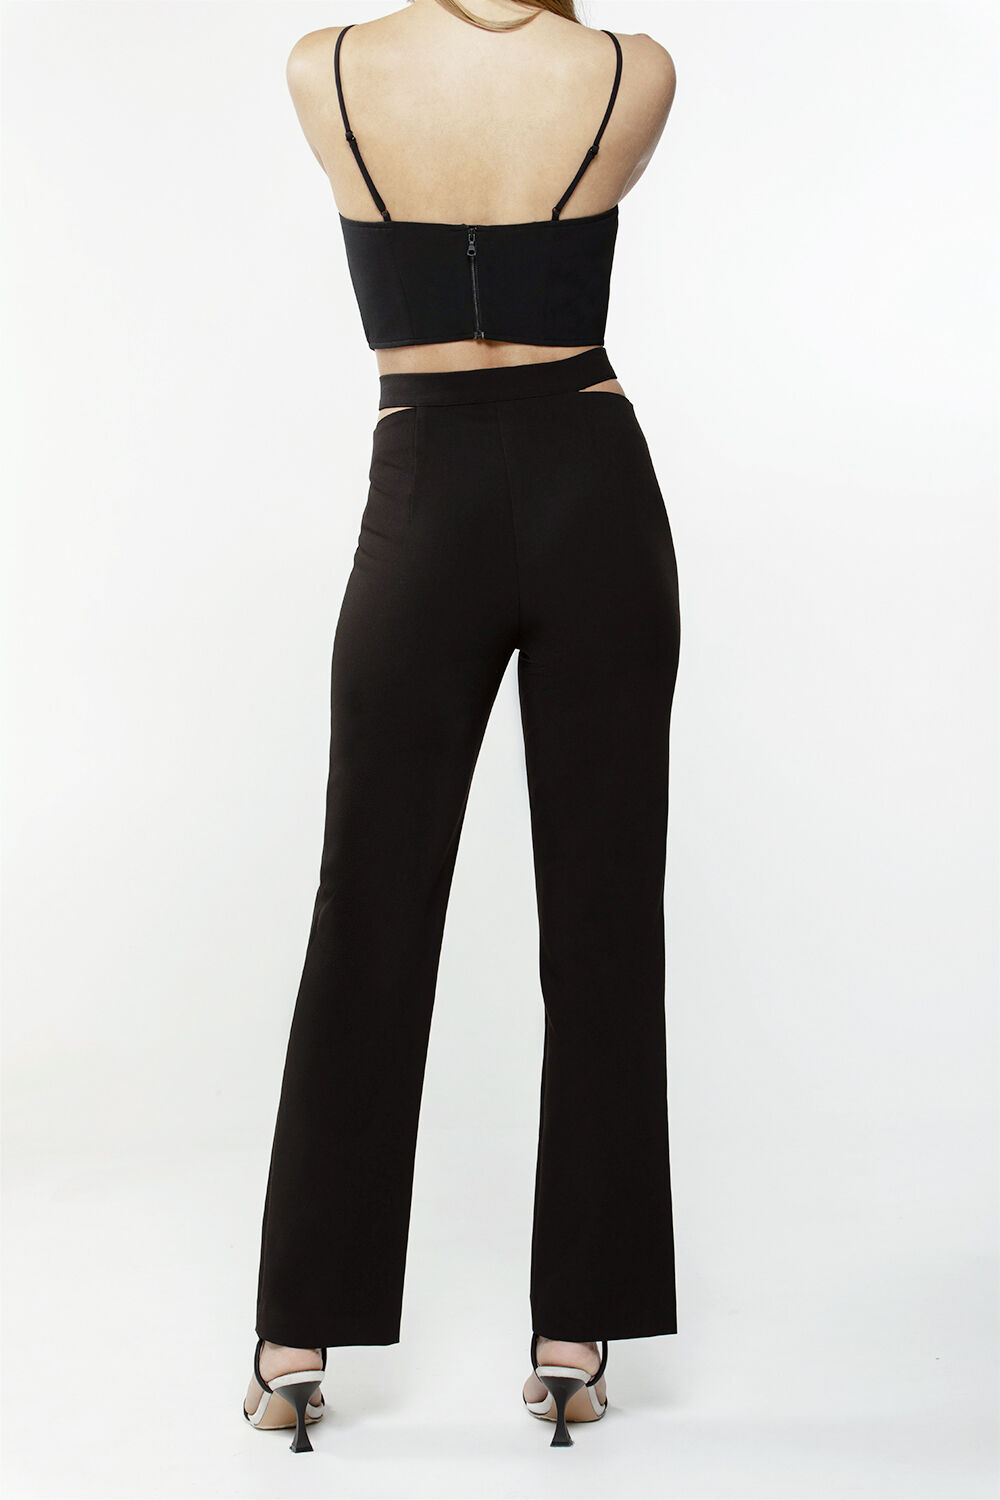 KYLIE CUT OUT PANT in colour CAVIAR